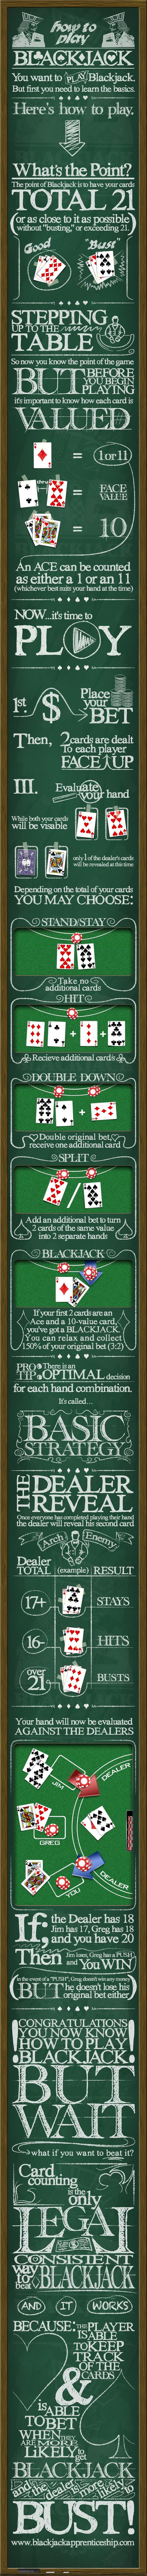 How to Play Blackjack[INFOGRAPHIC]